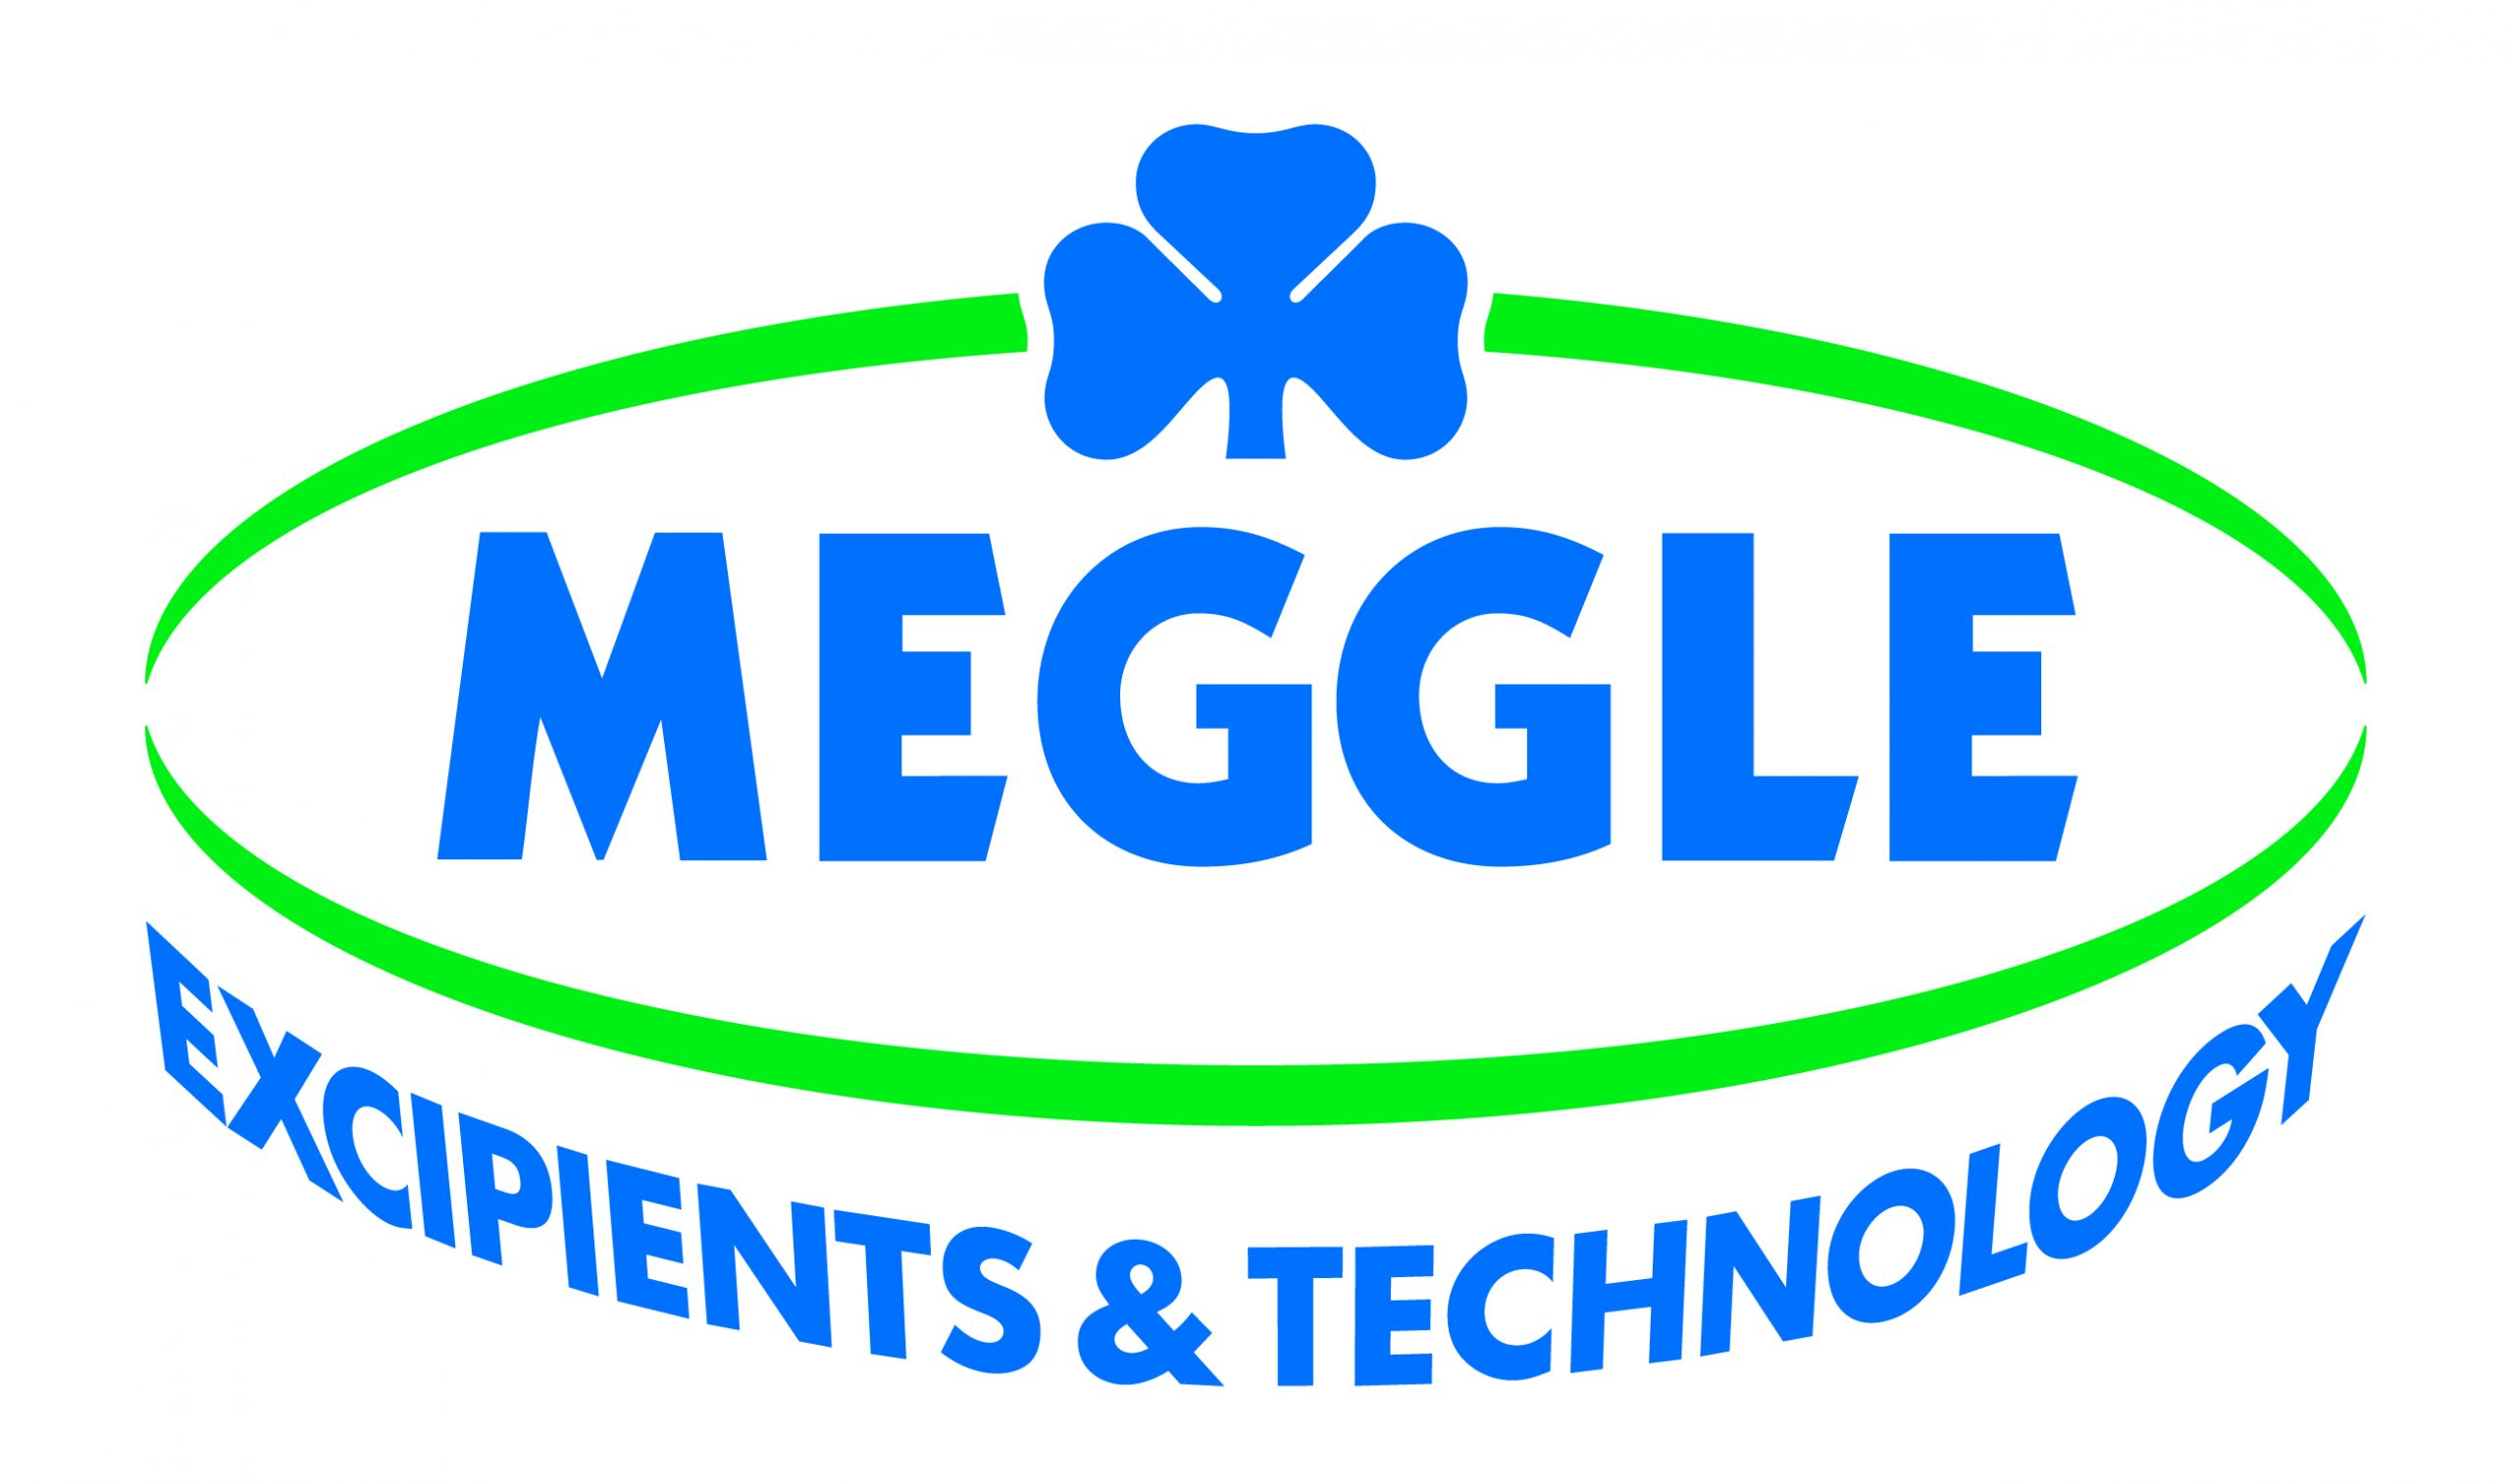 MEGGLE's RetaLac® tablets show similar release system performance irrespective of the preparation method used